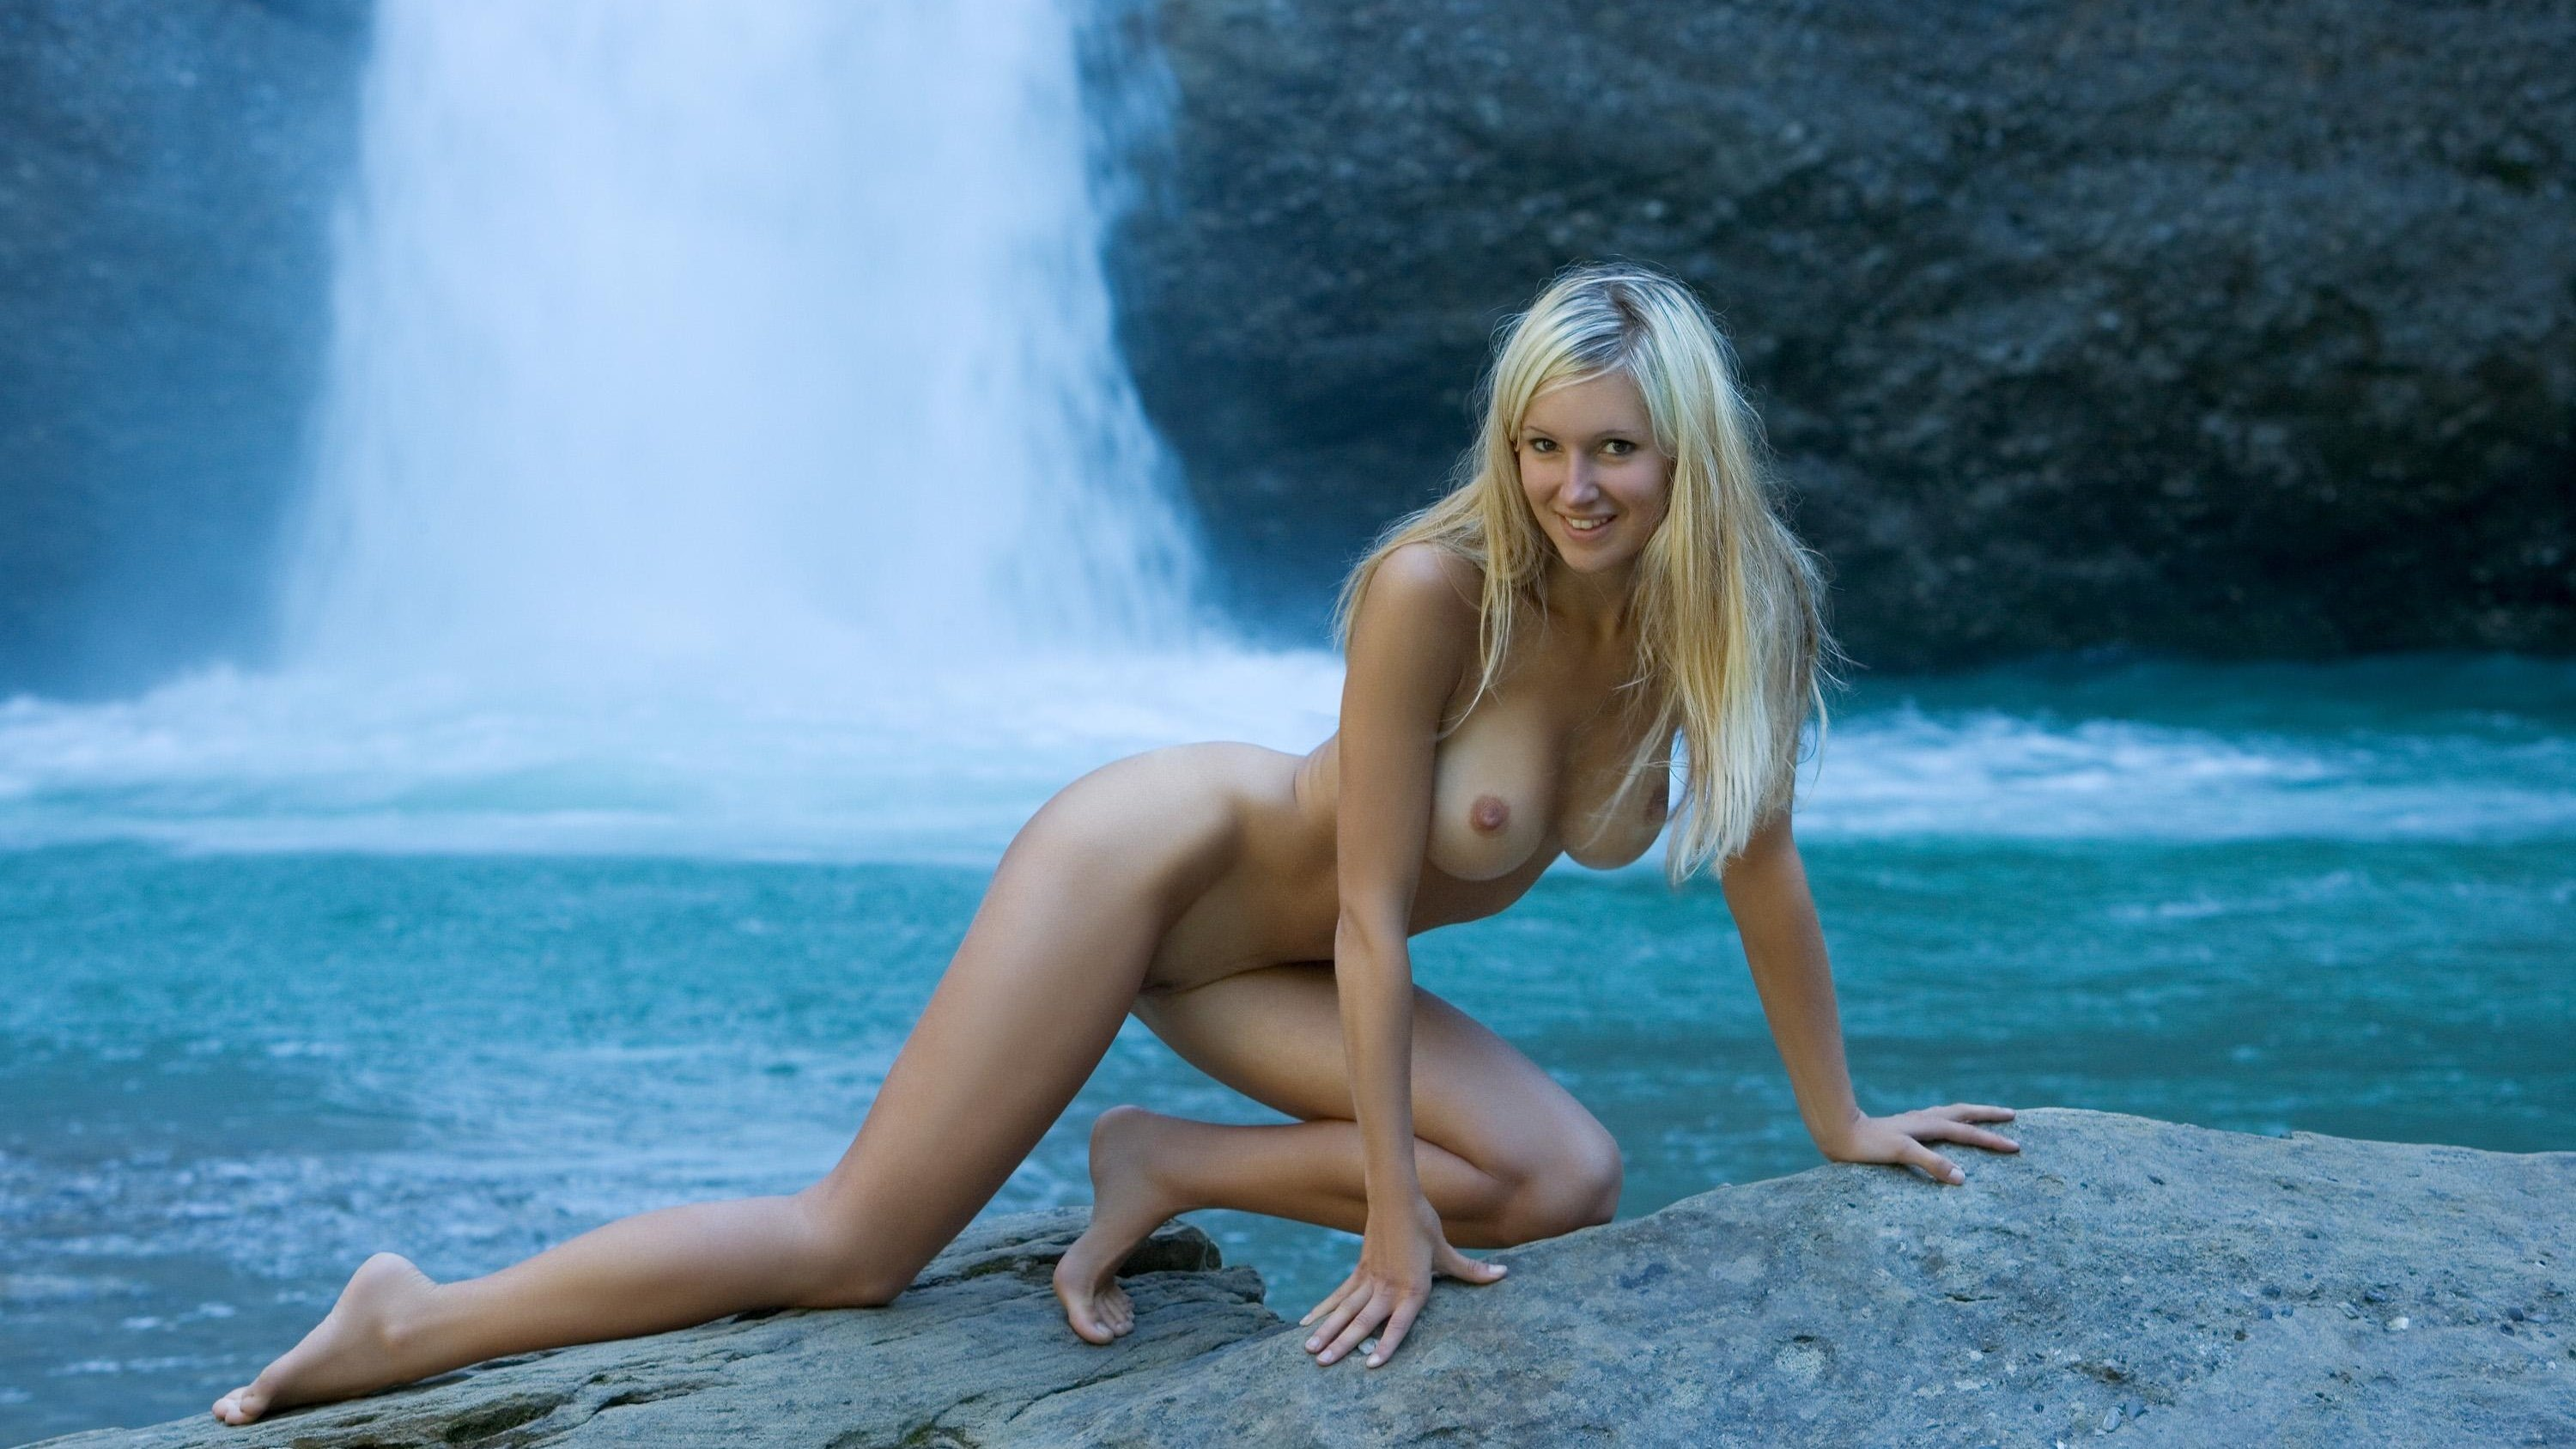 Beautiful Busty Italian Model Babe Blonde Nude Photo Free Porn Images